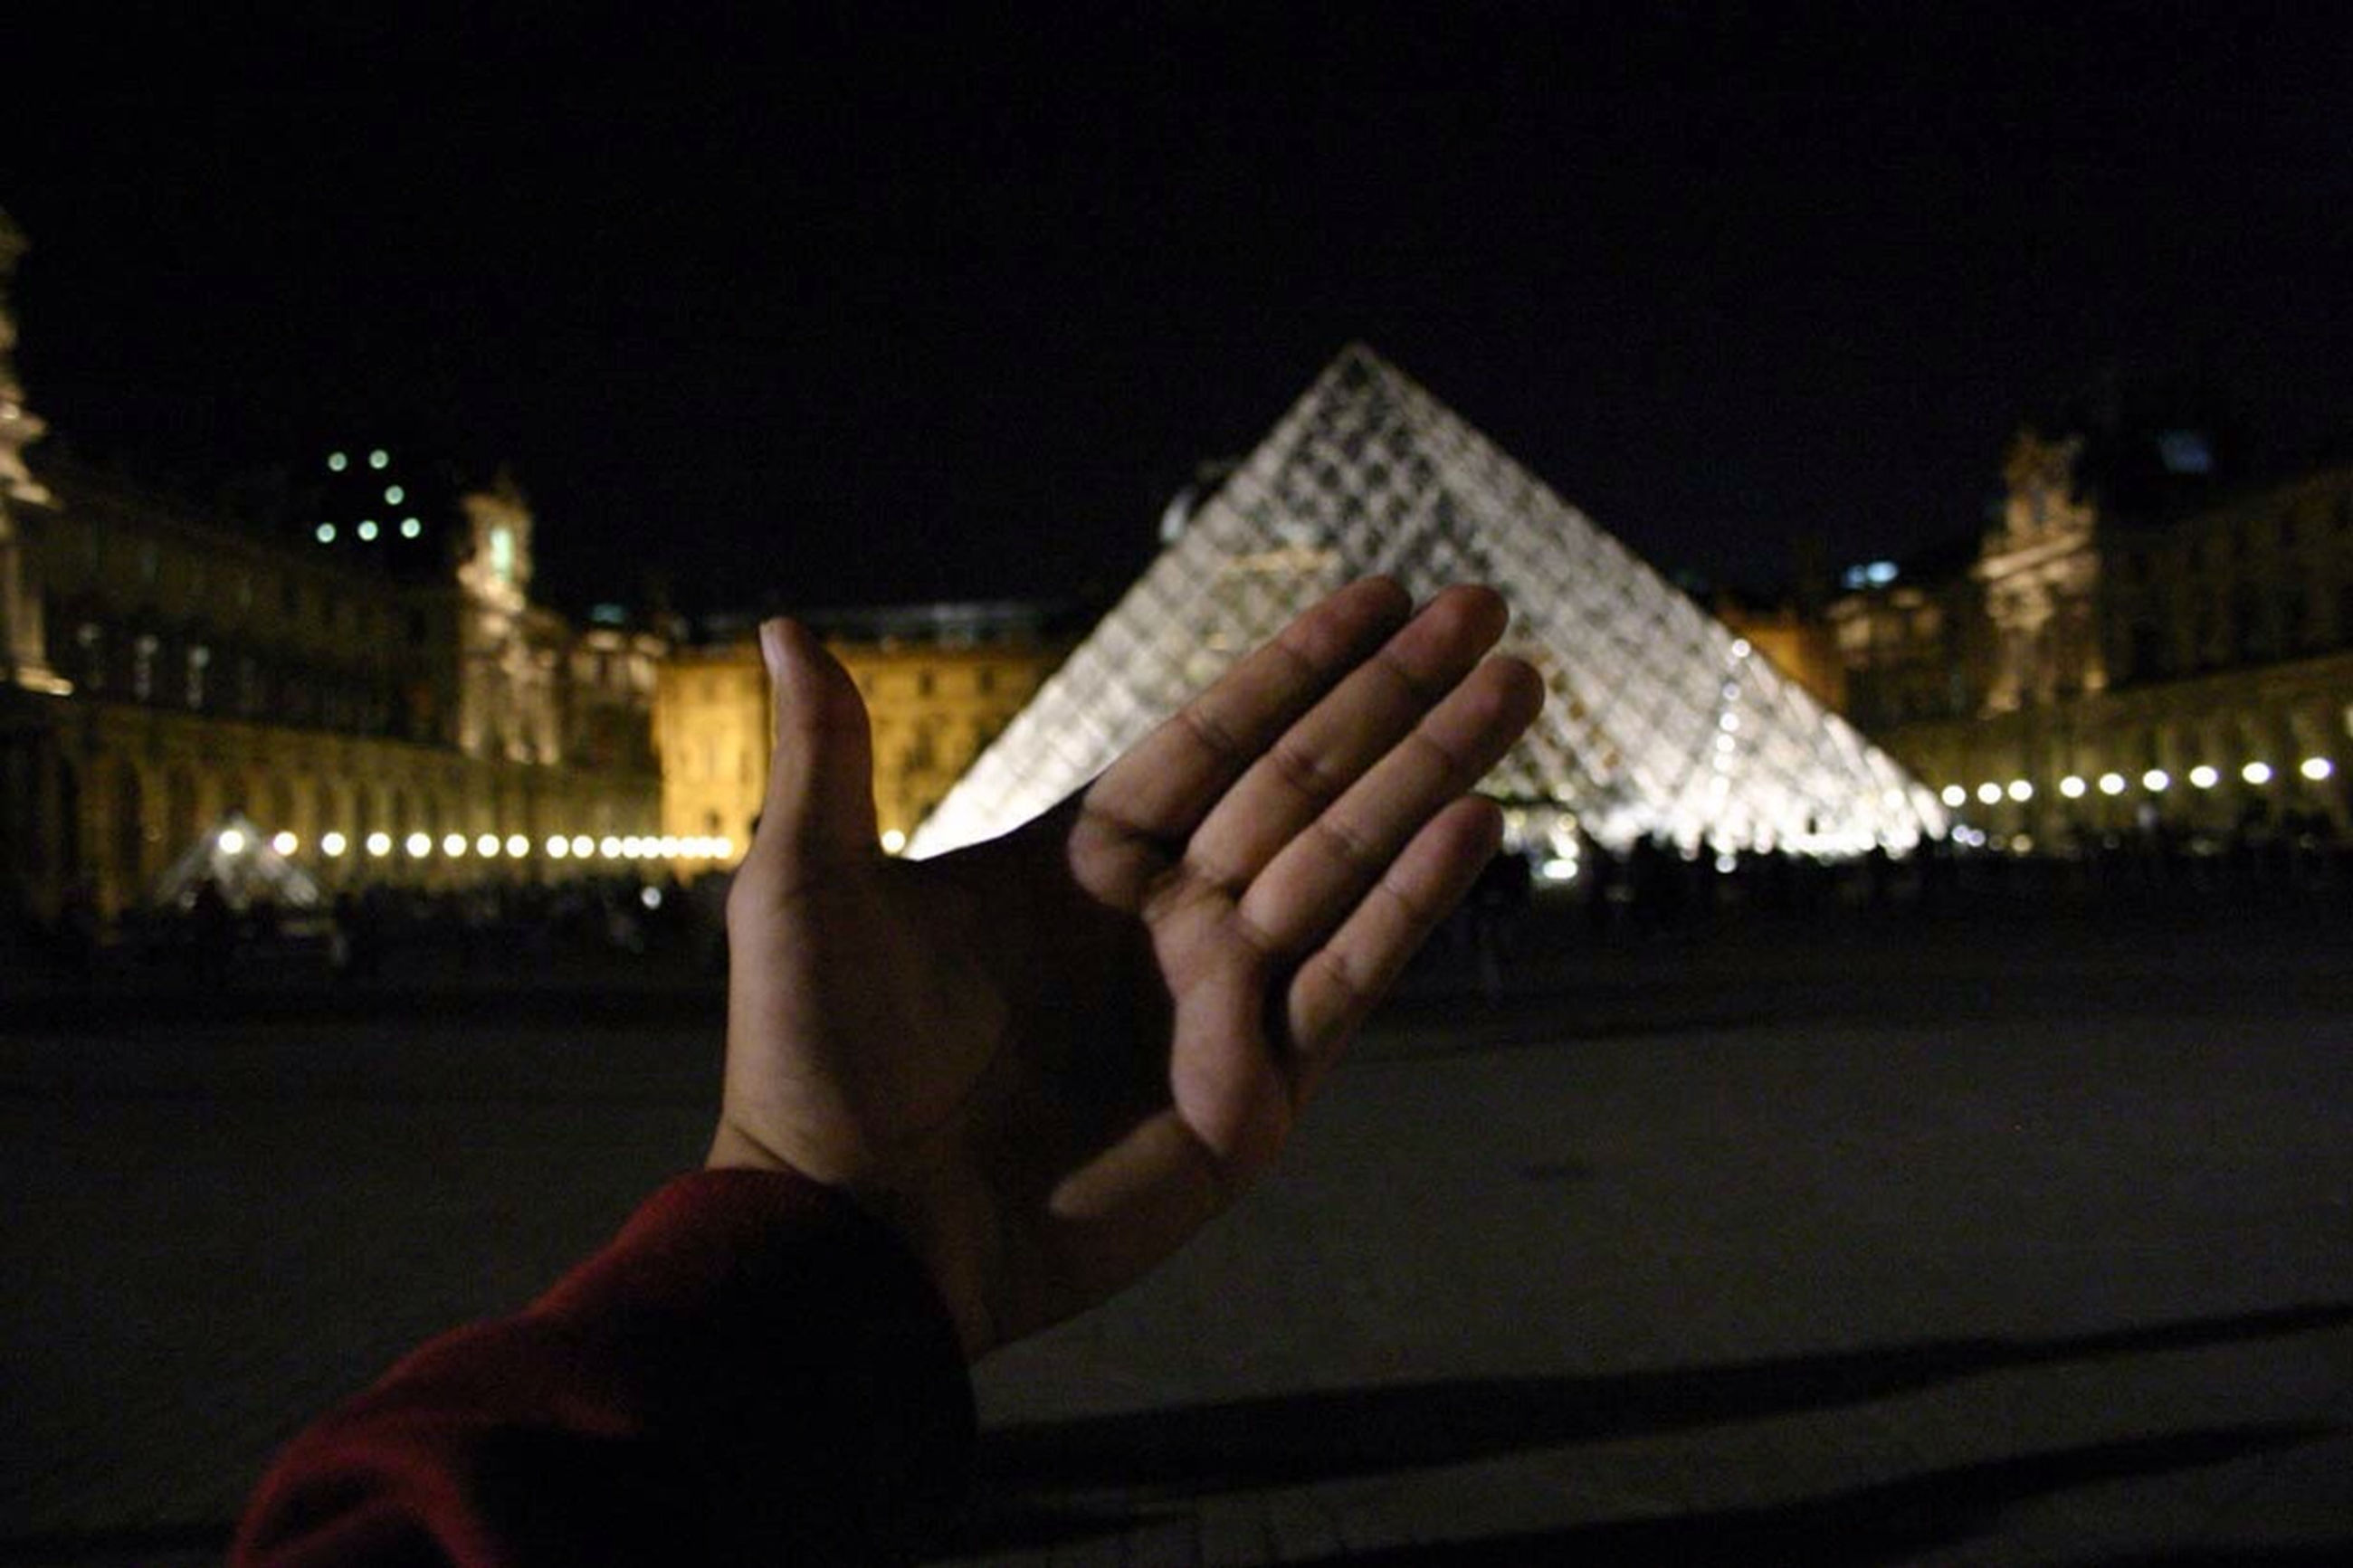 person, night, lifestyles, illuminated, part of, building exterior, leisure activity, cropped, architecture, built structure, holding, personal perspective, unrecognizable person, city, men, human finger